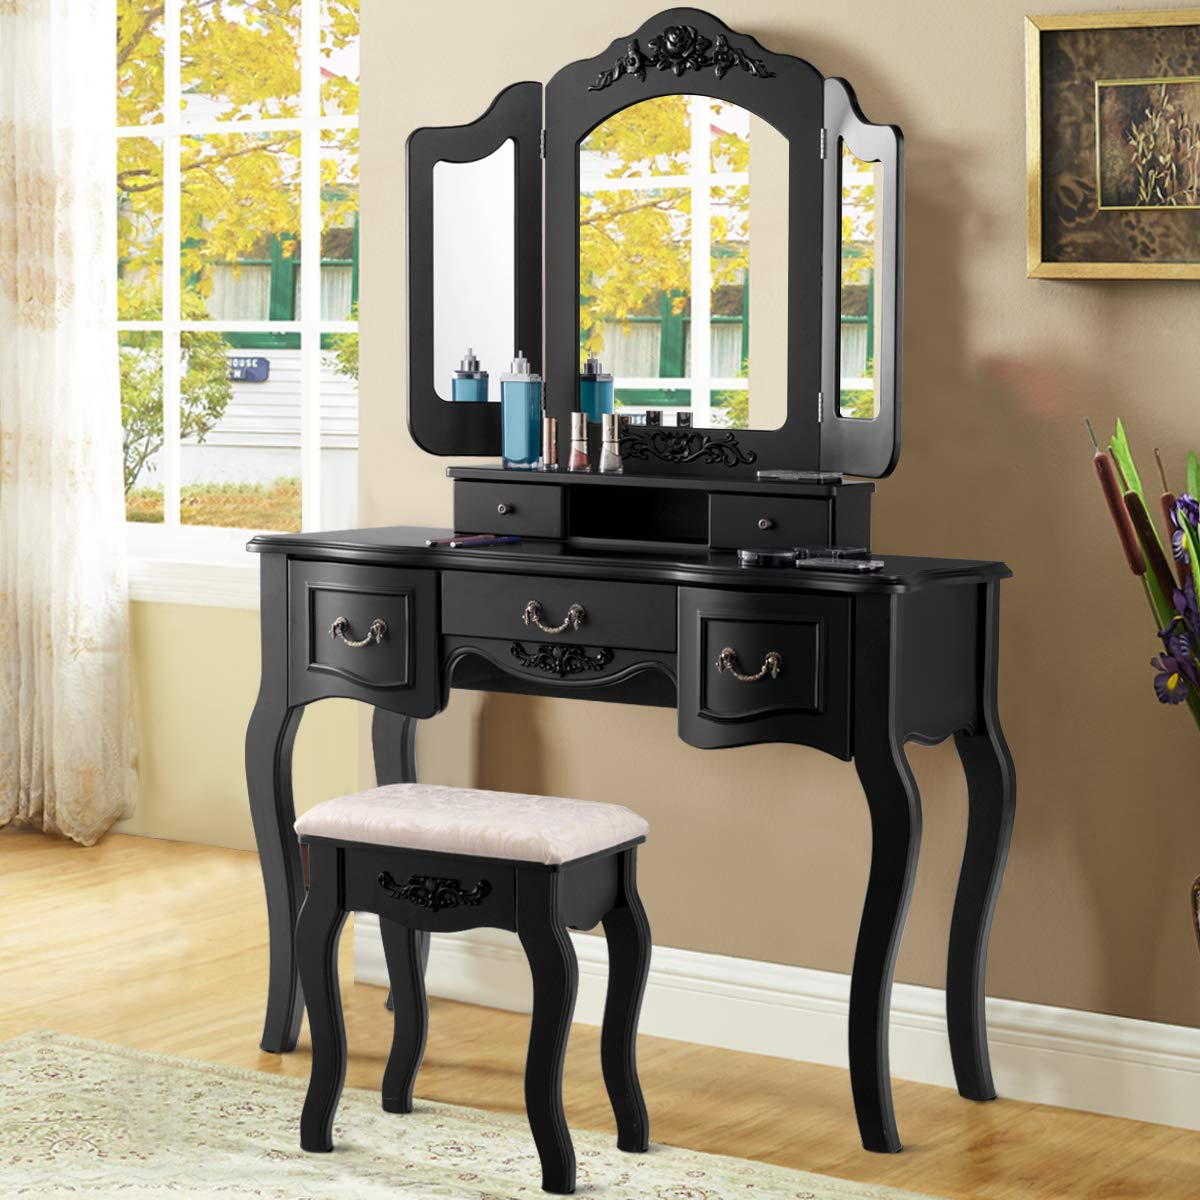 . Giantex Vanity Dressing Table Set with Stool  Tri Folding Vintage Vanity  Makeup Dressing Table Set 5 Drawers Christmas  Large Vanities with Bench